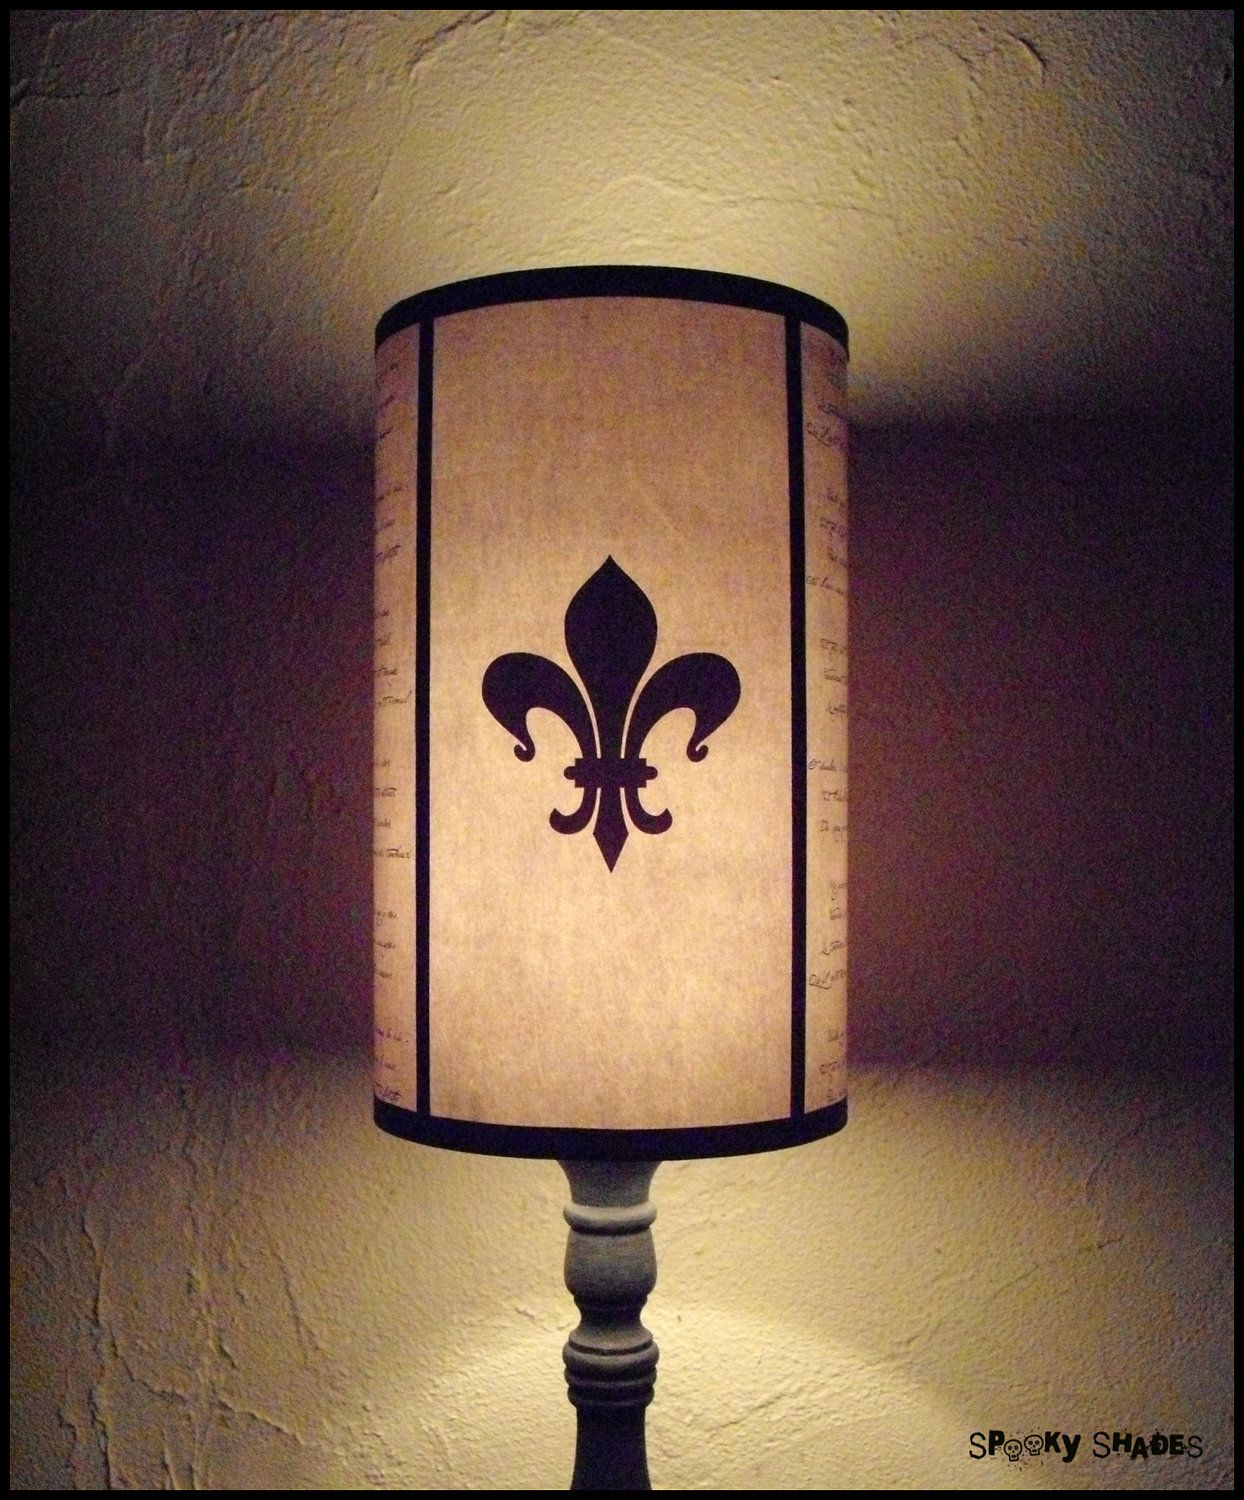 Evil Flowers Beige Fleur De Lis Lampshade Lamp Shade   Shabby Chic Decor,  French Country Decor, Beige Lamp Shade, Fleur De Lys, Calligraphy